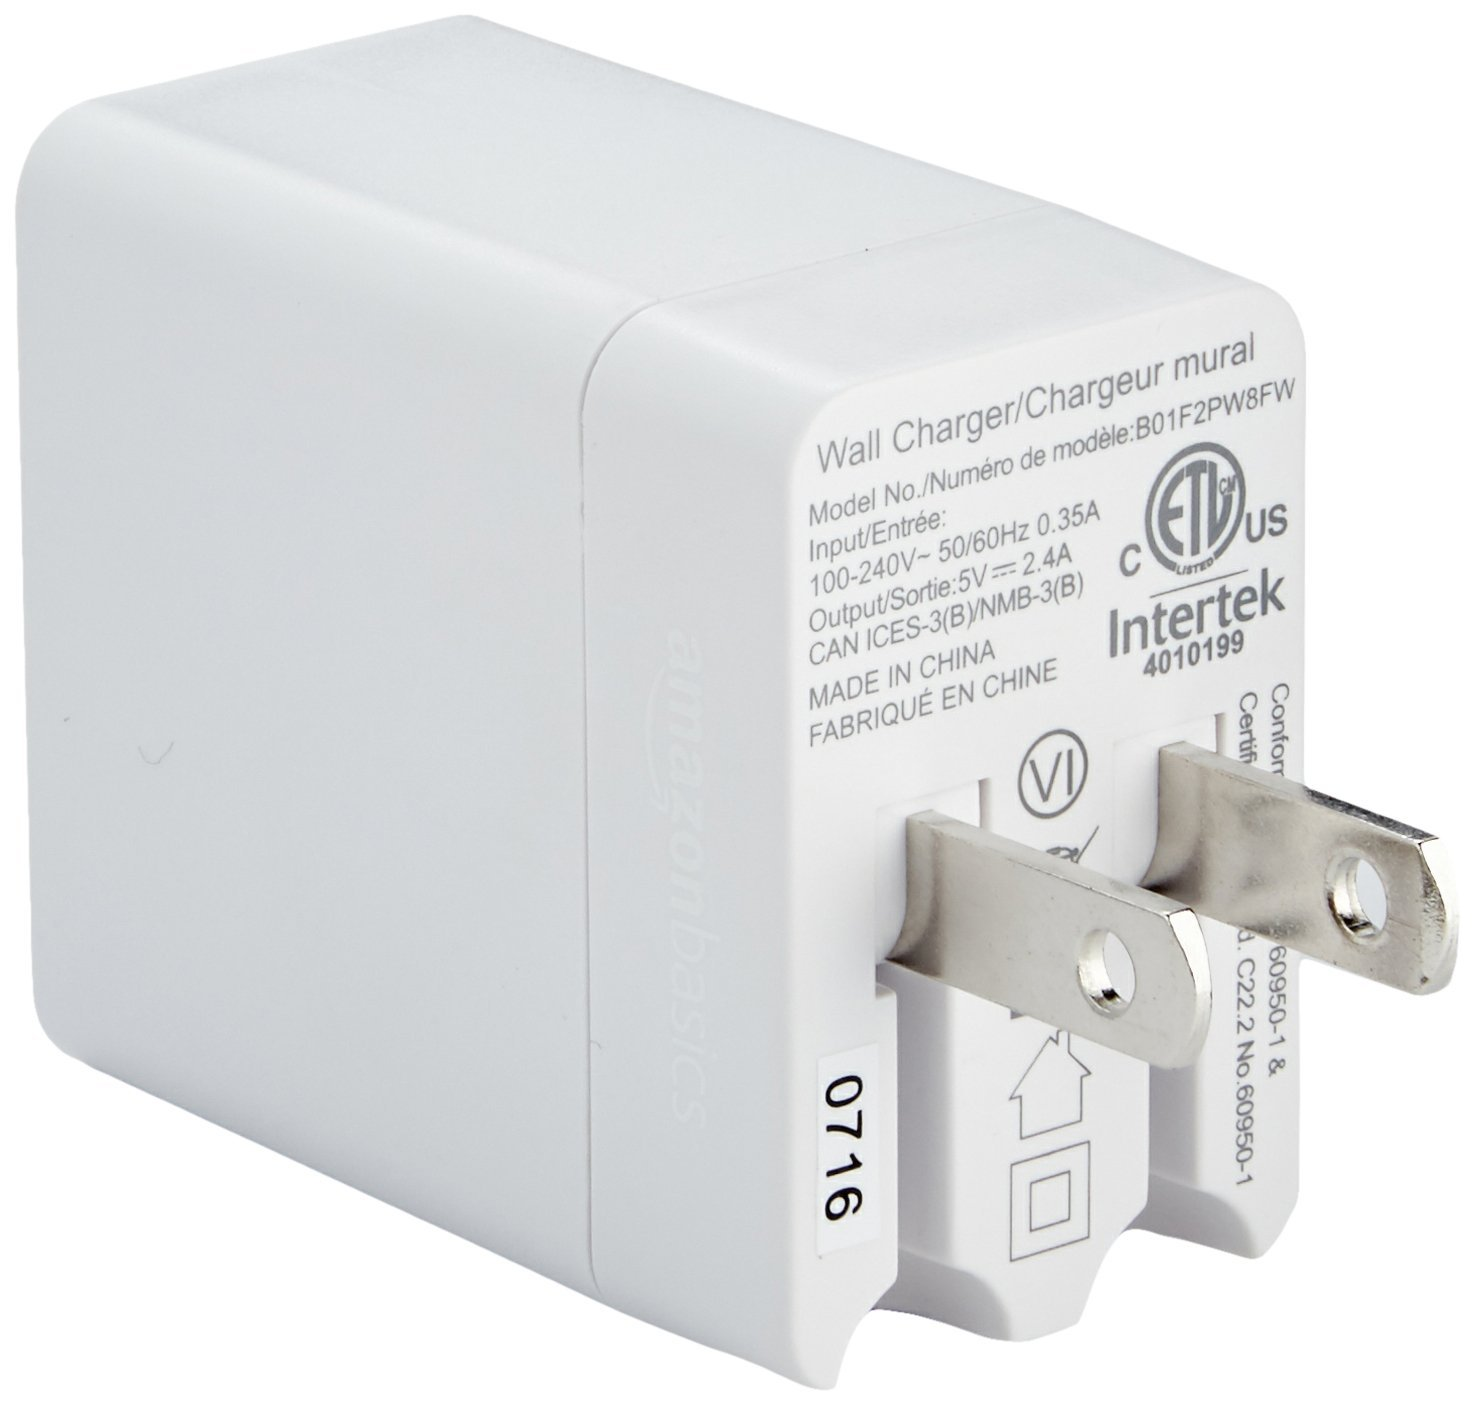 AmazonBasics One-Port USB Wall Charger (12-Watt) Compatible With iPhone and Samsung Phones - White (2-Pack) by AmazonBasics (Image #4)